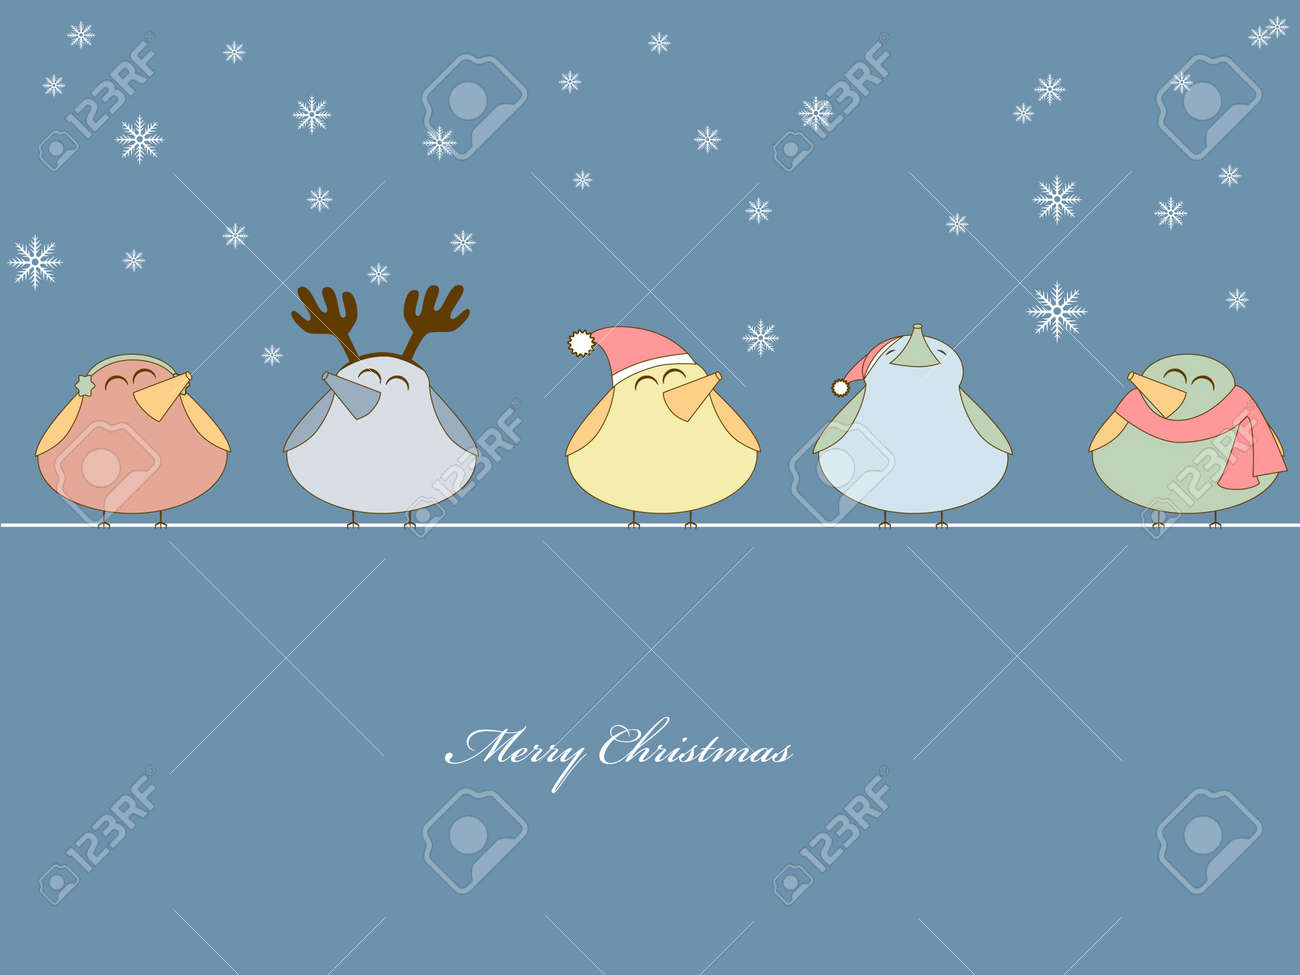 picture of birds singing christmas songs on blue background Stock Vector - 8265624